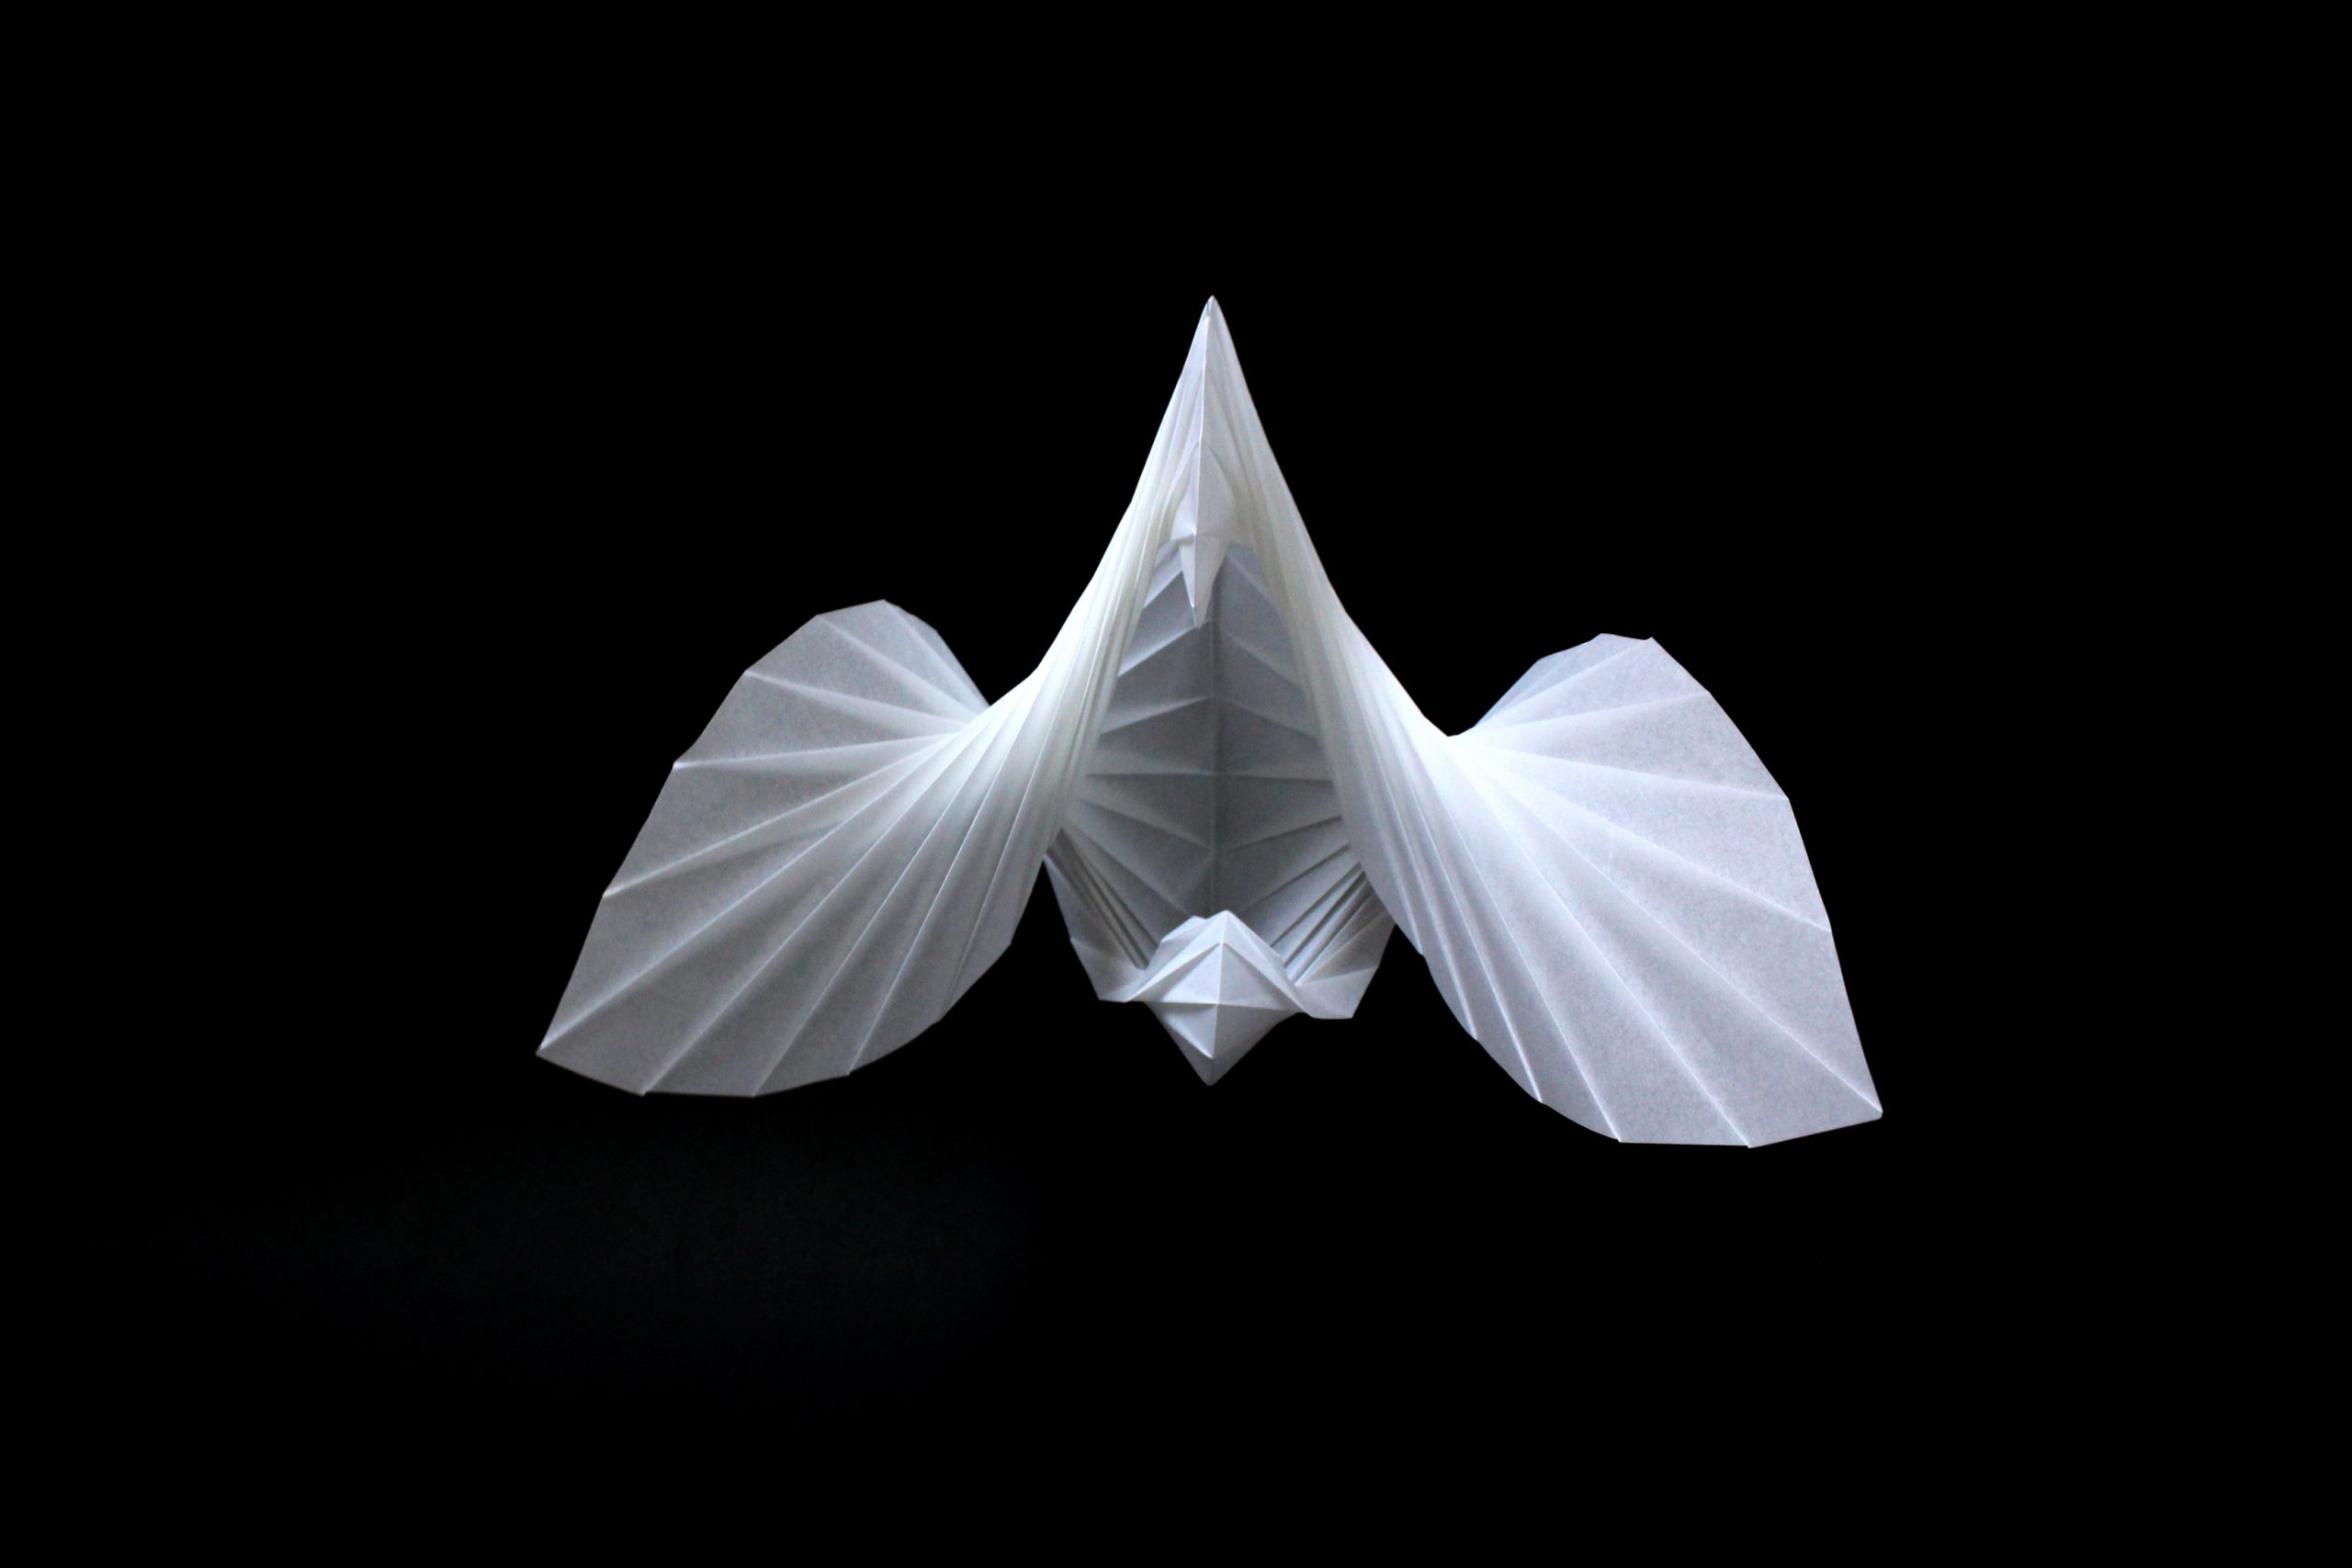 Maia Lehr Sacks, Origami art, Three dimensional art, Paper, Experimental